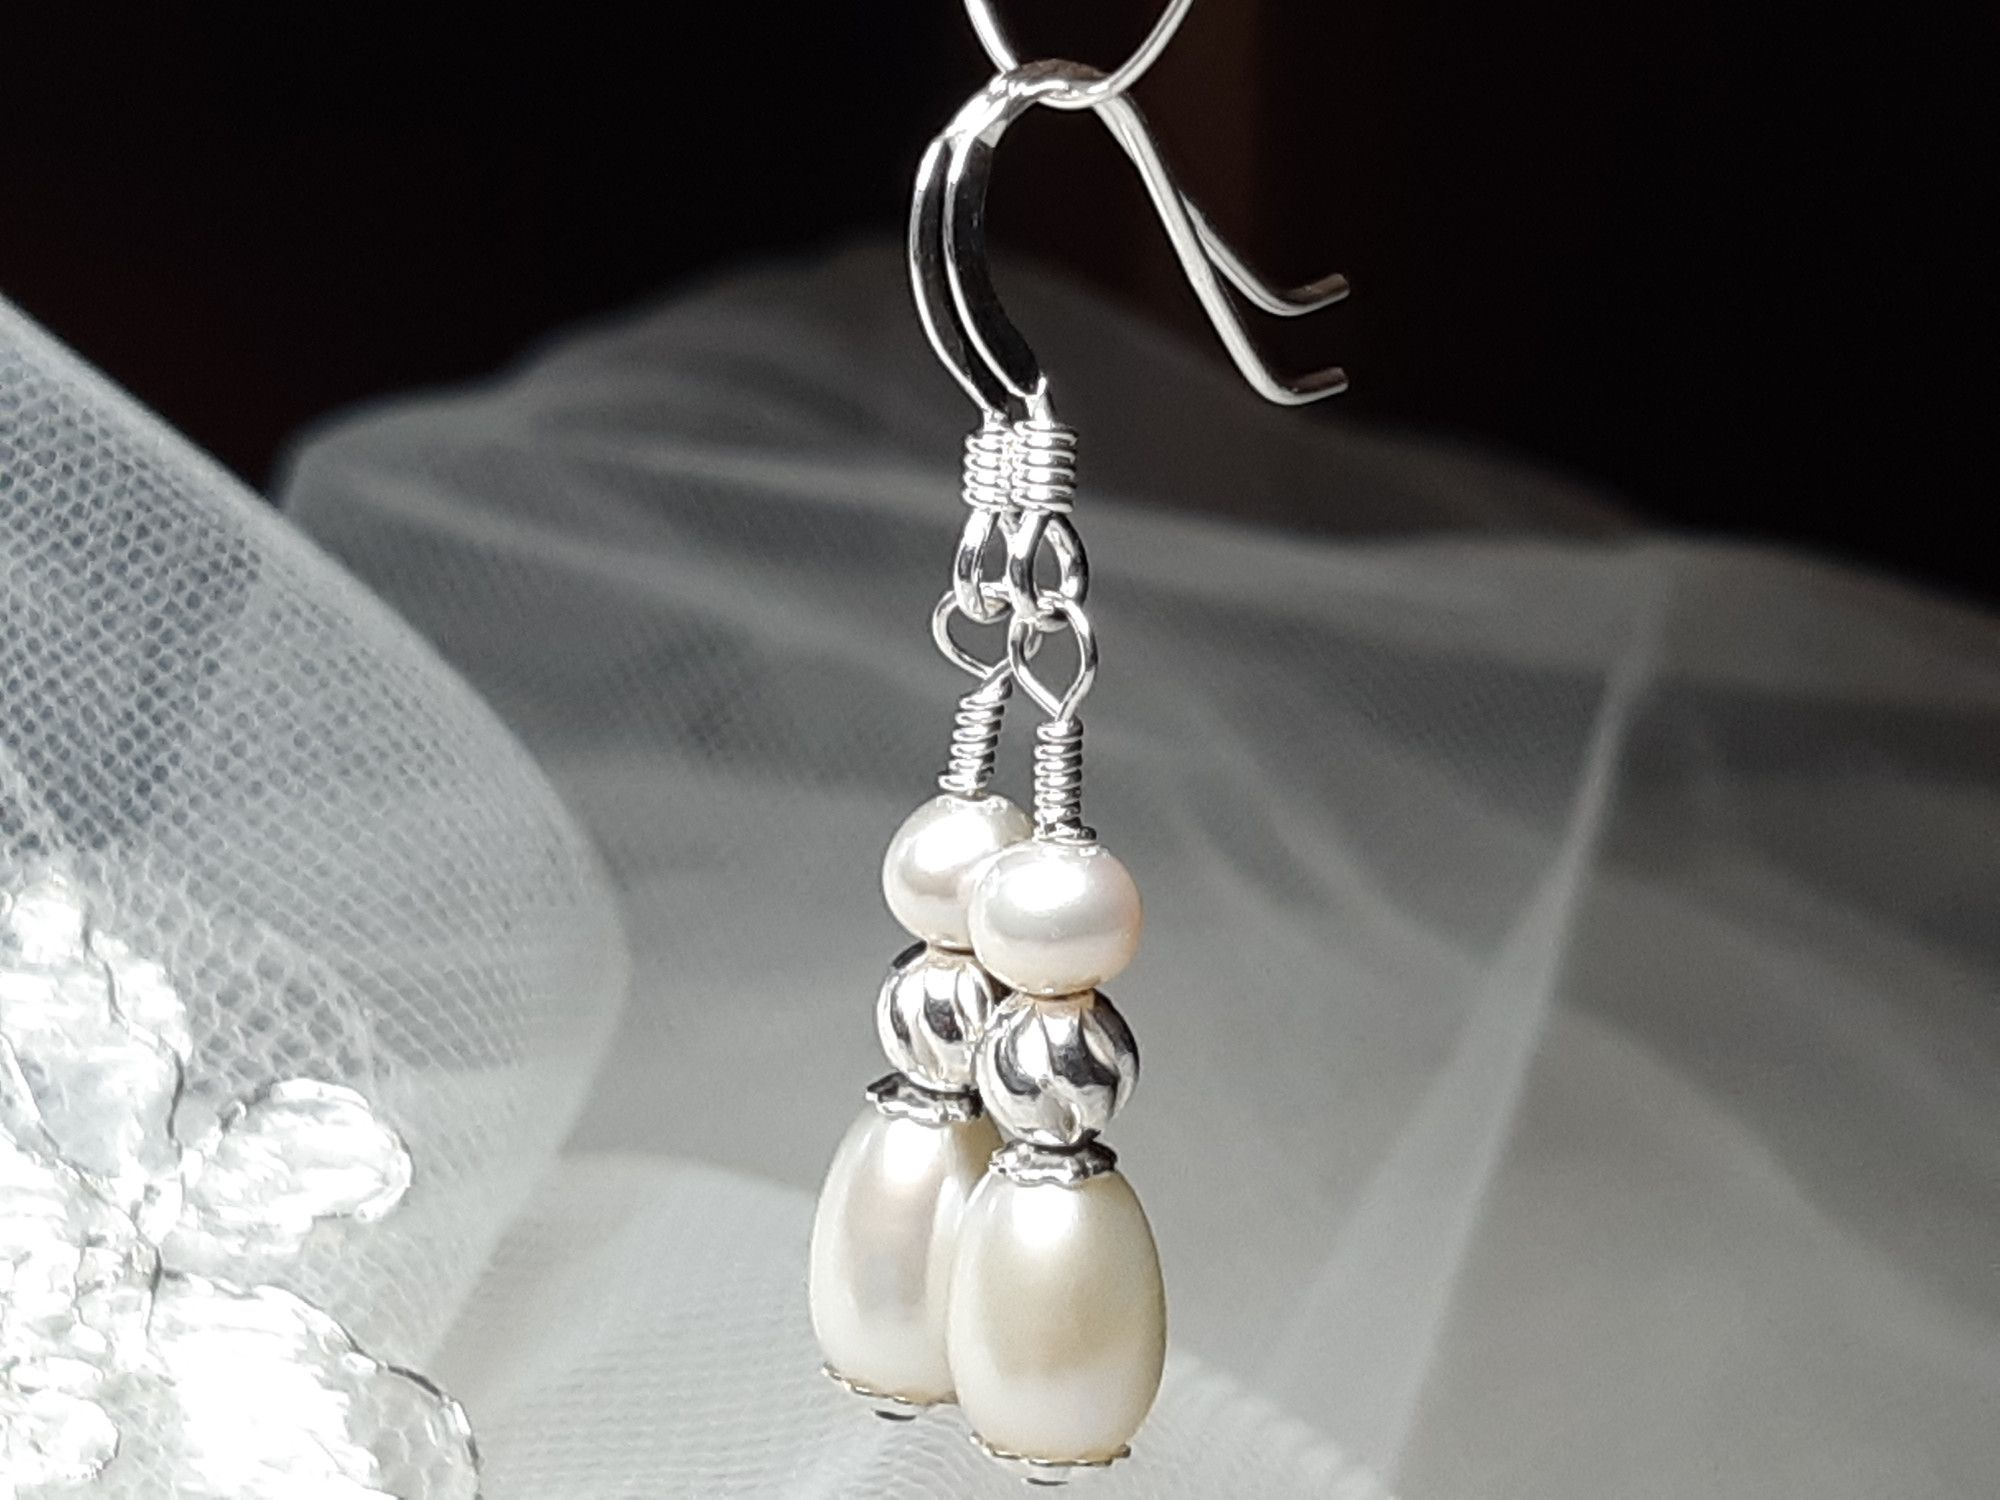 Occasion-bridal-pearl drop earrings with sterling silver-1.jpg